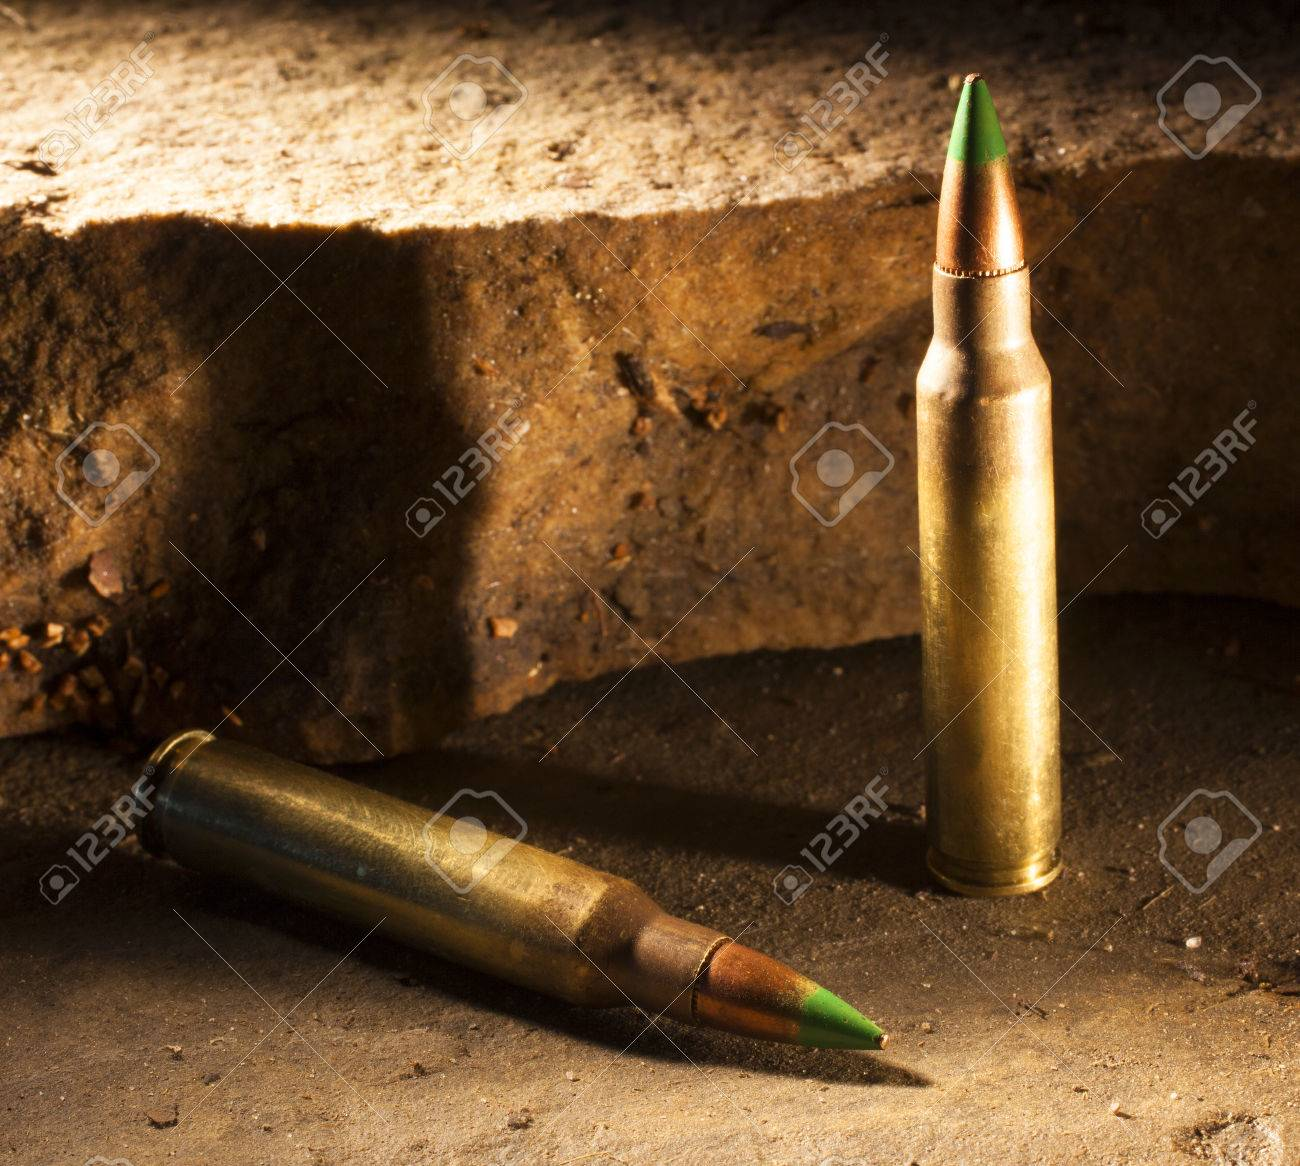 ammunition with a green tip some consider capable of piercing